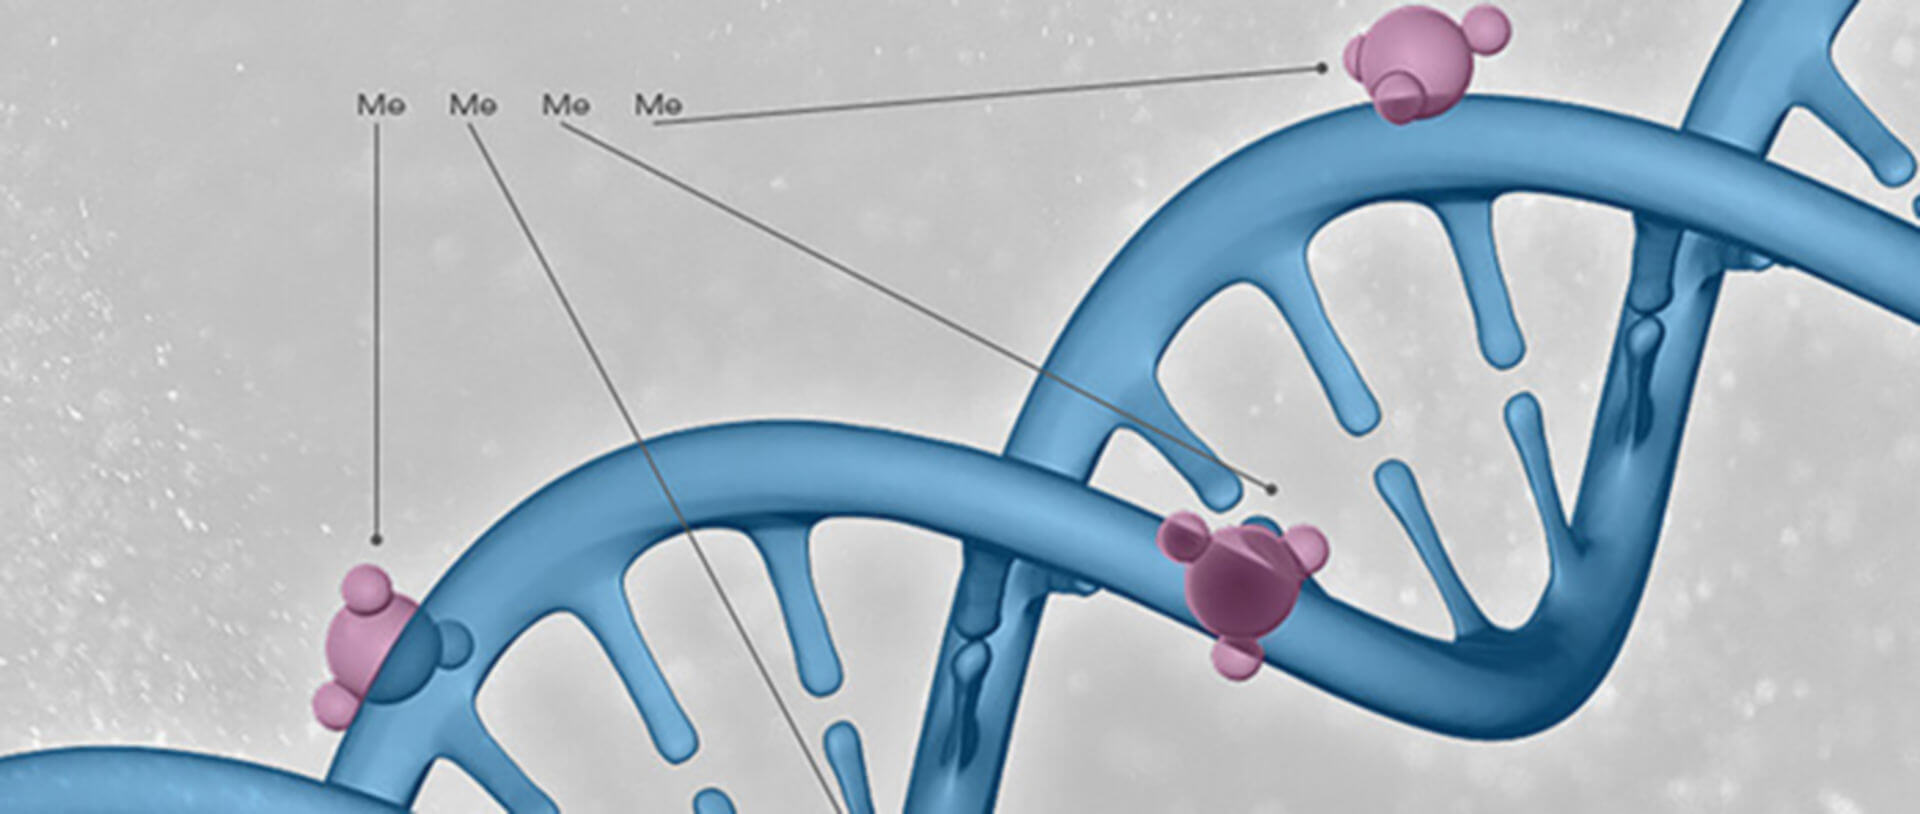 DNA modification enzymes